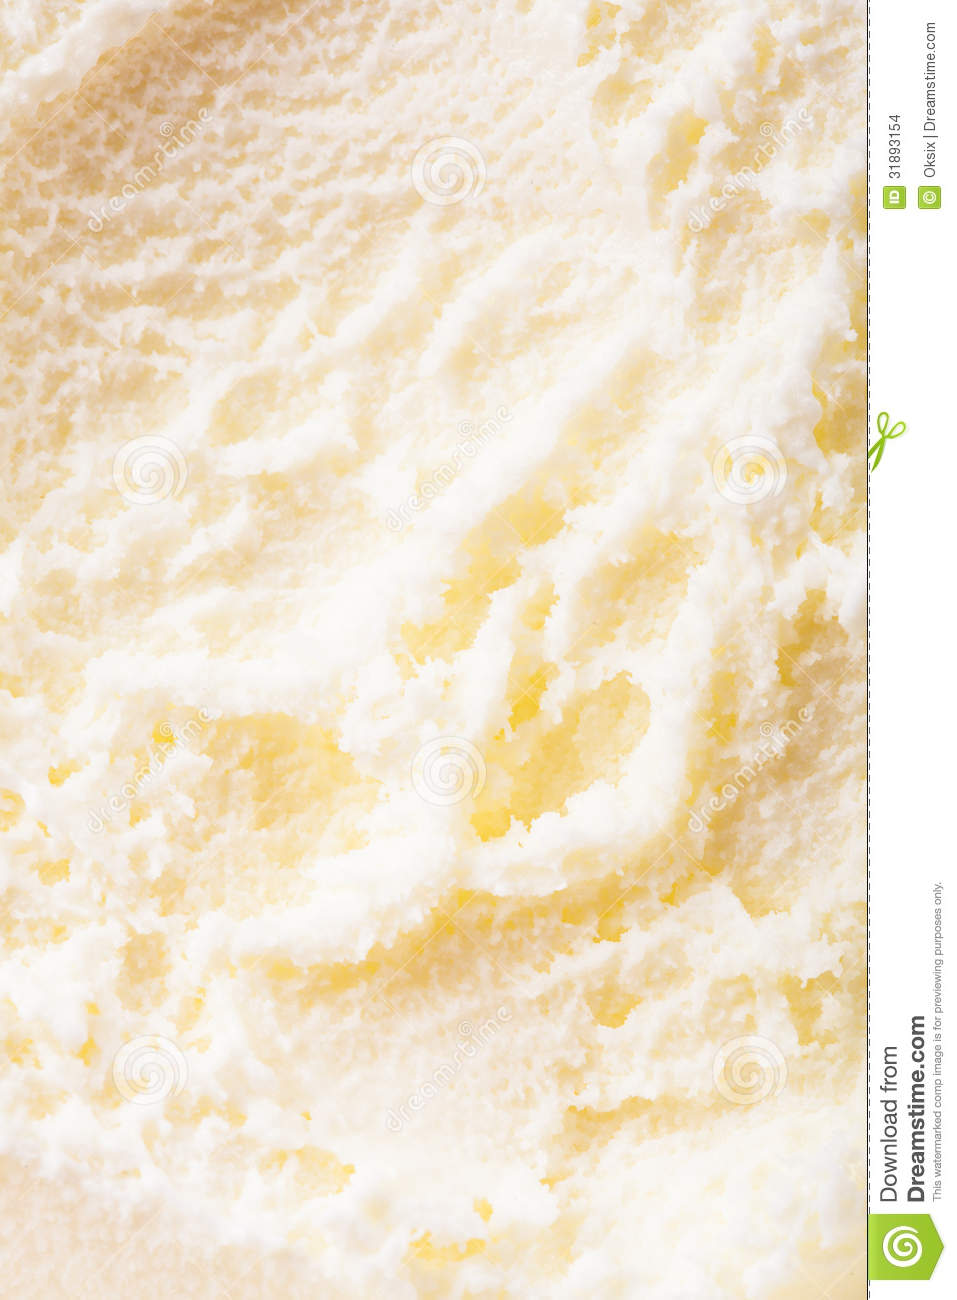 Ice Cream Background Stock Images - Image: 31893154